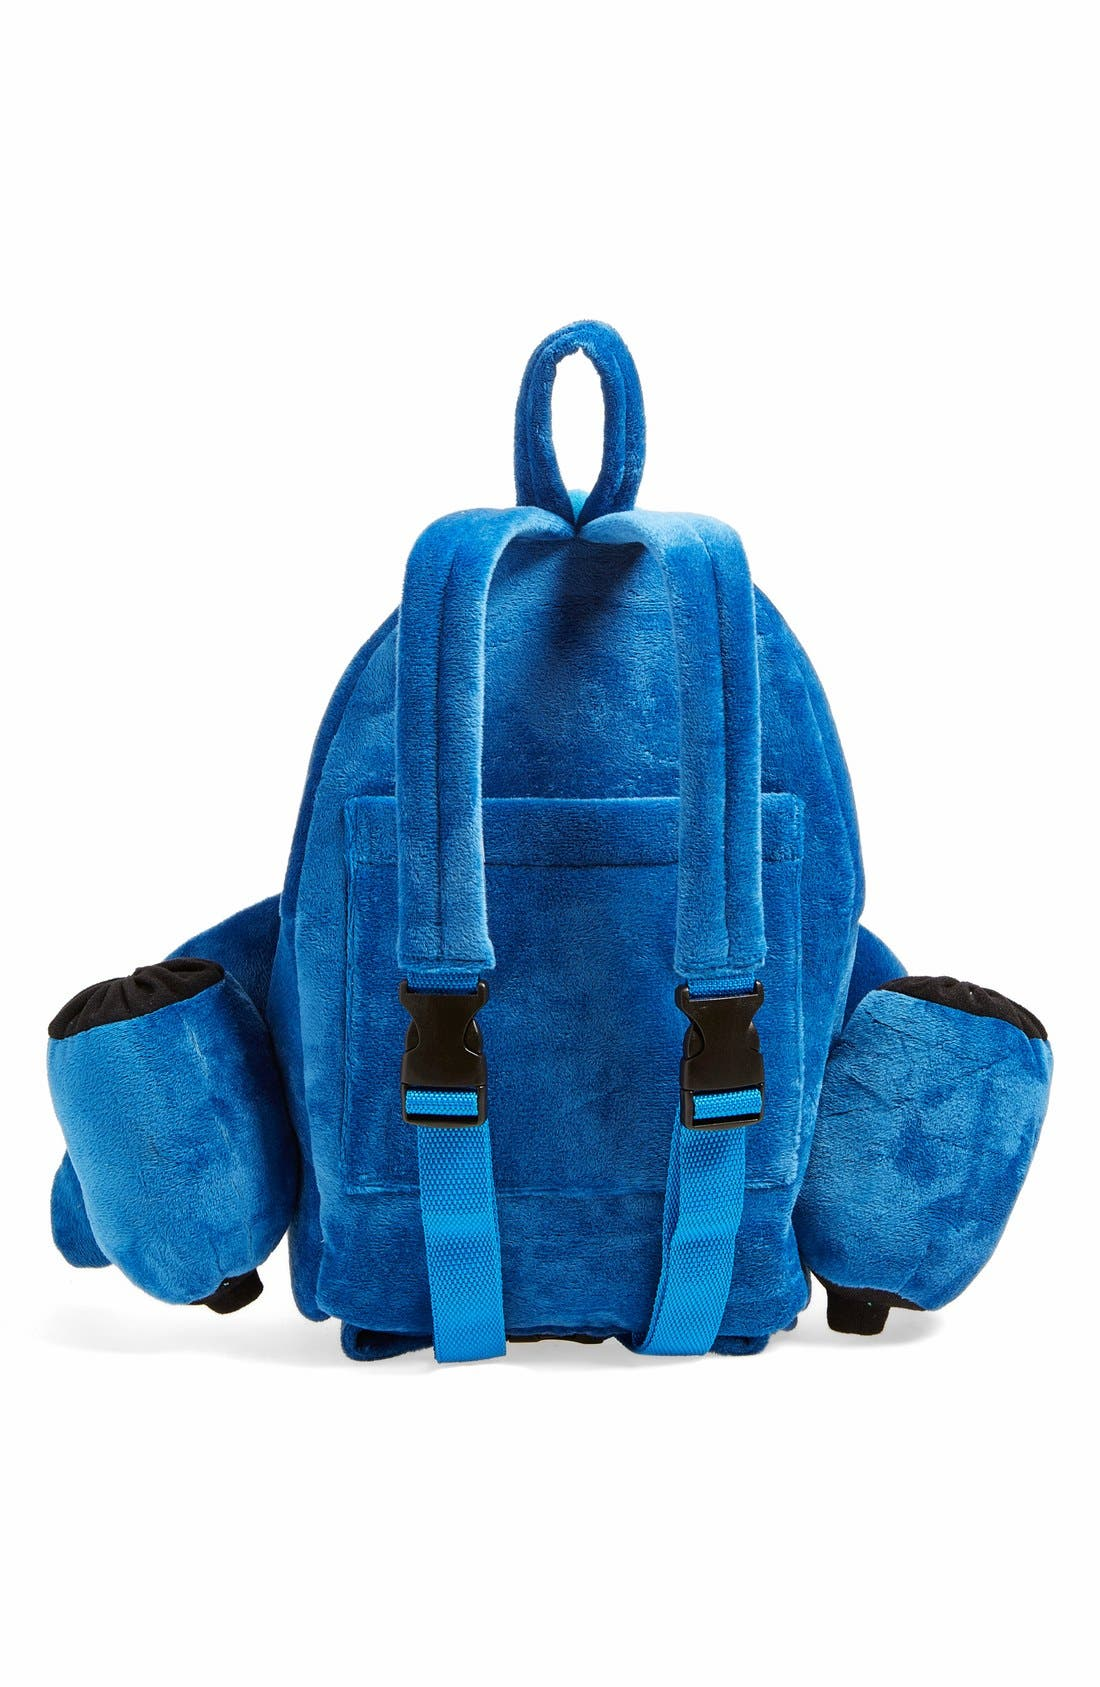 Trolley Rolling Backpack Set,                             Alternate thumbnail 2, color,                             Airplane Blue